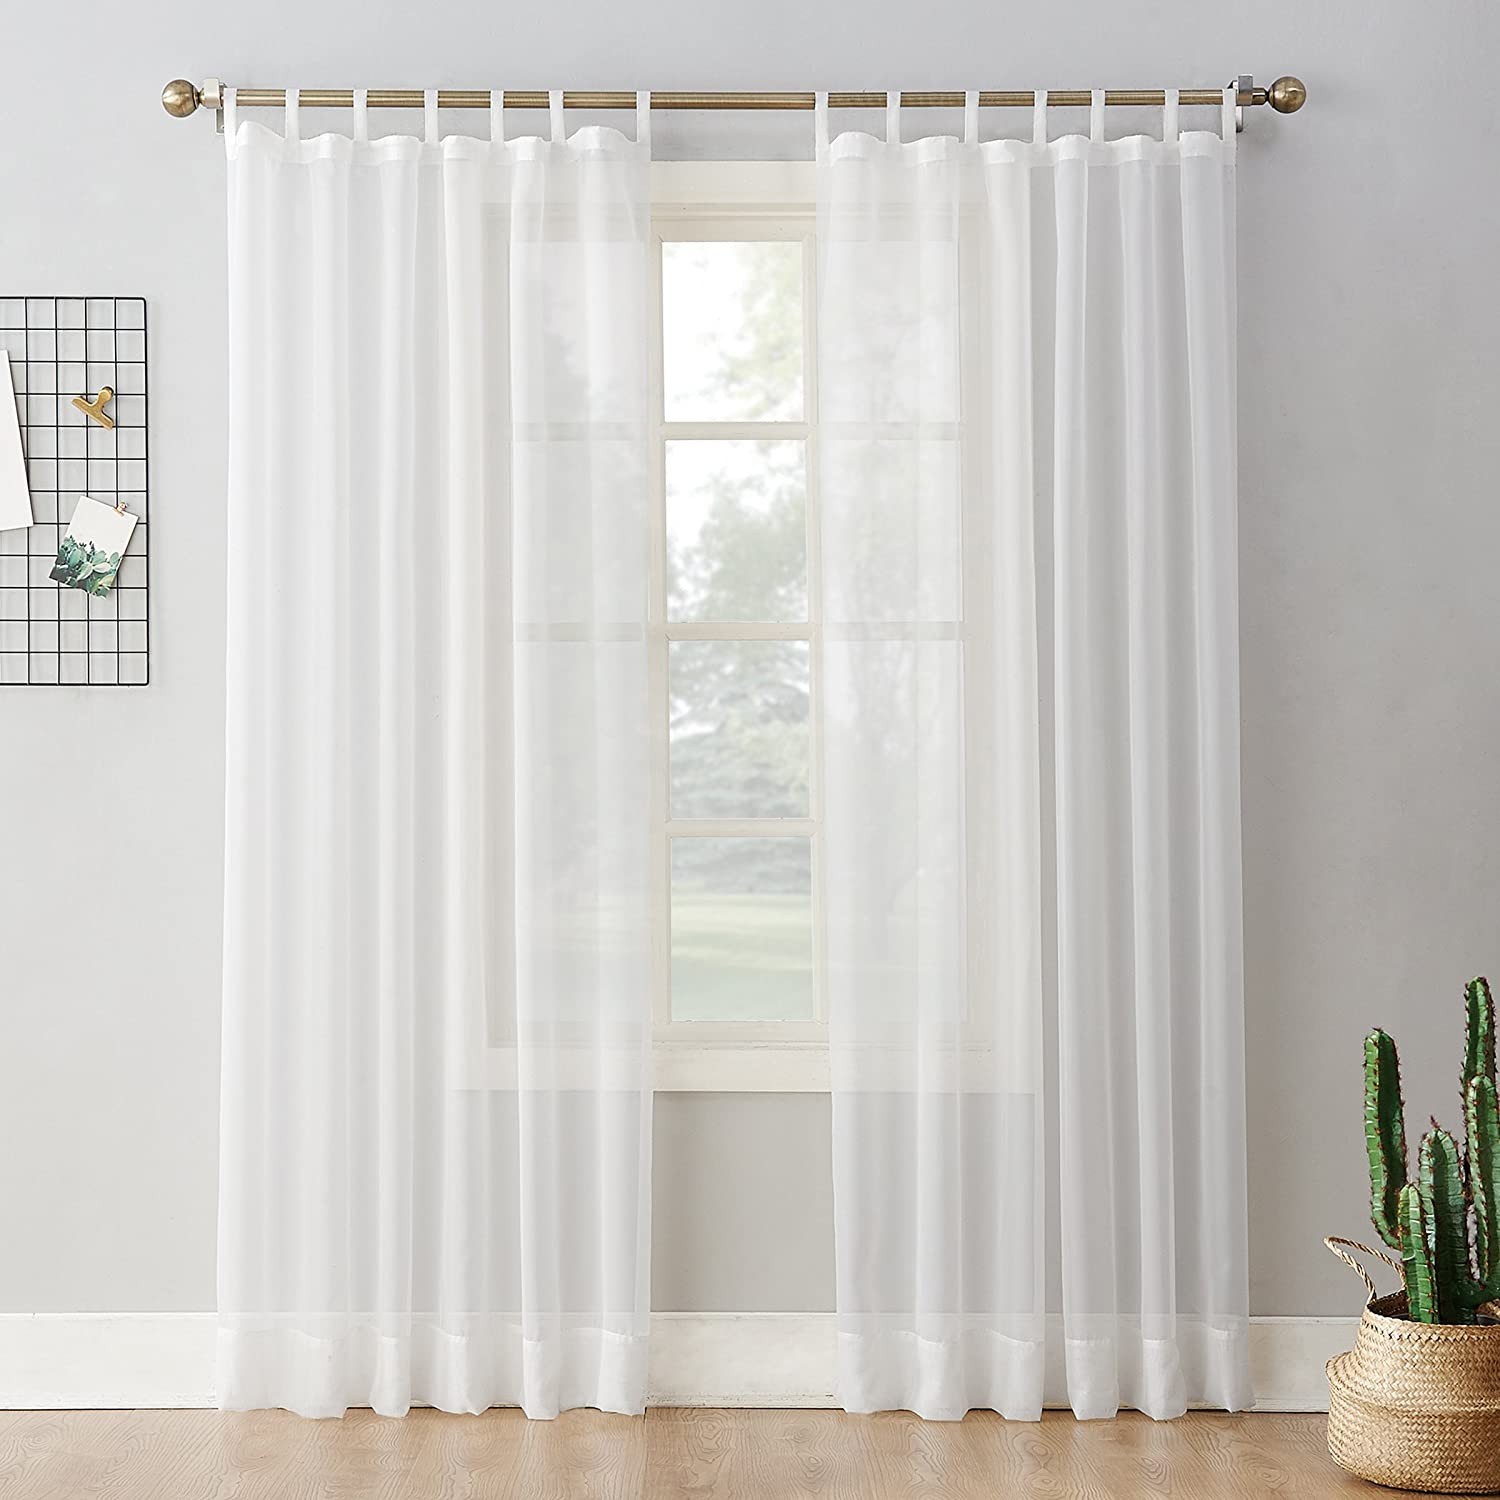 No. 918 52454 Emily Sheer Voile Tab Top Curtain Panel, 59